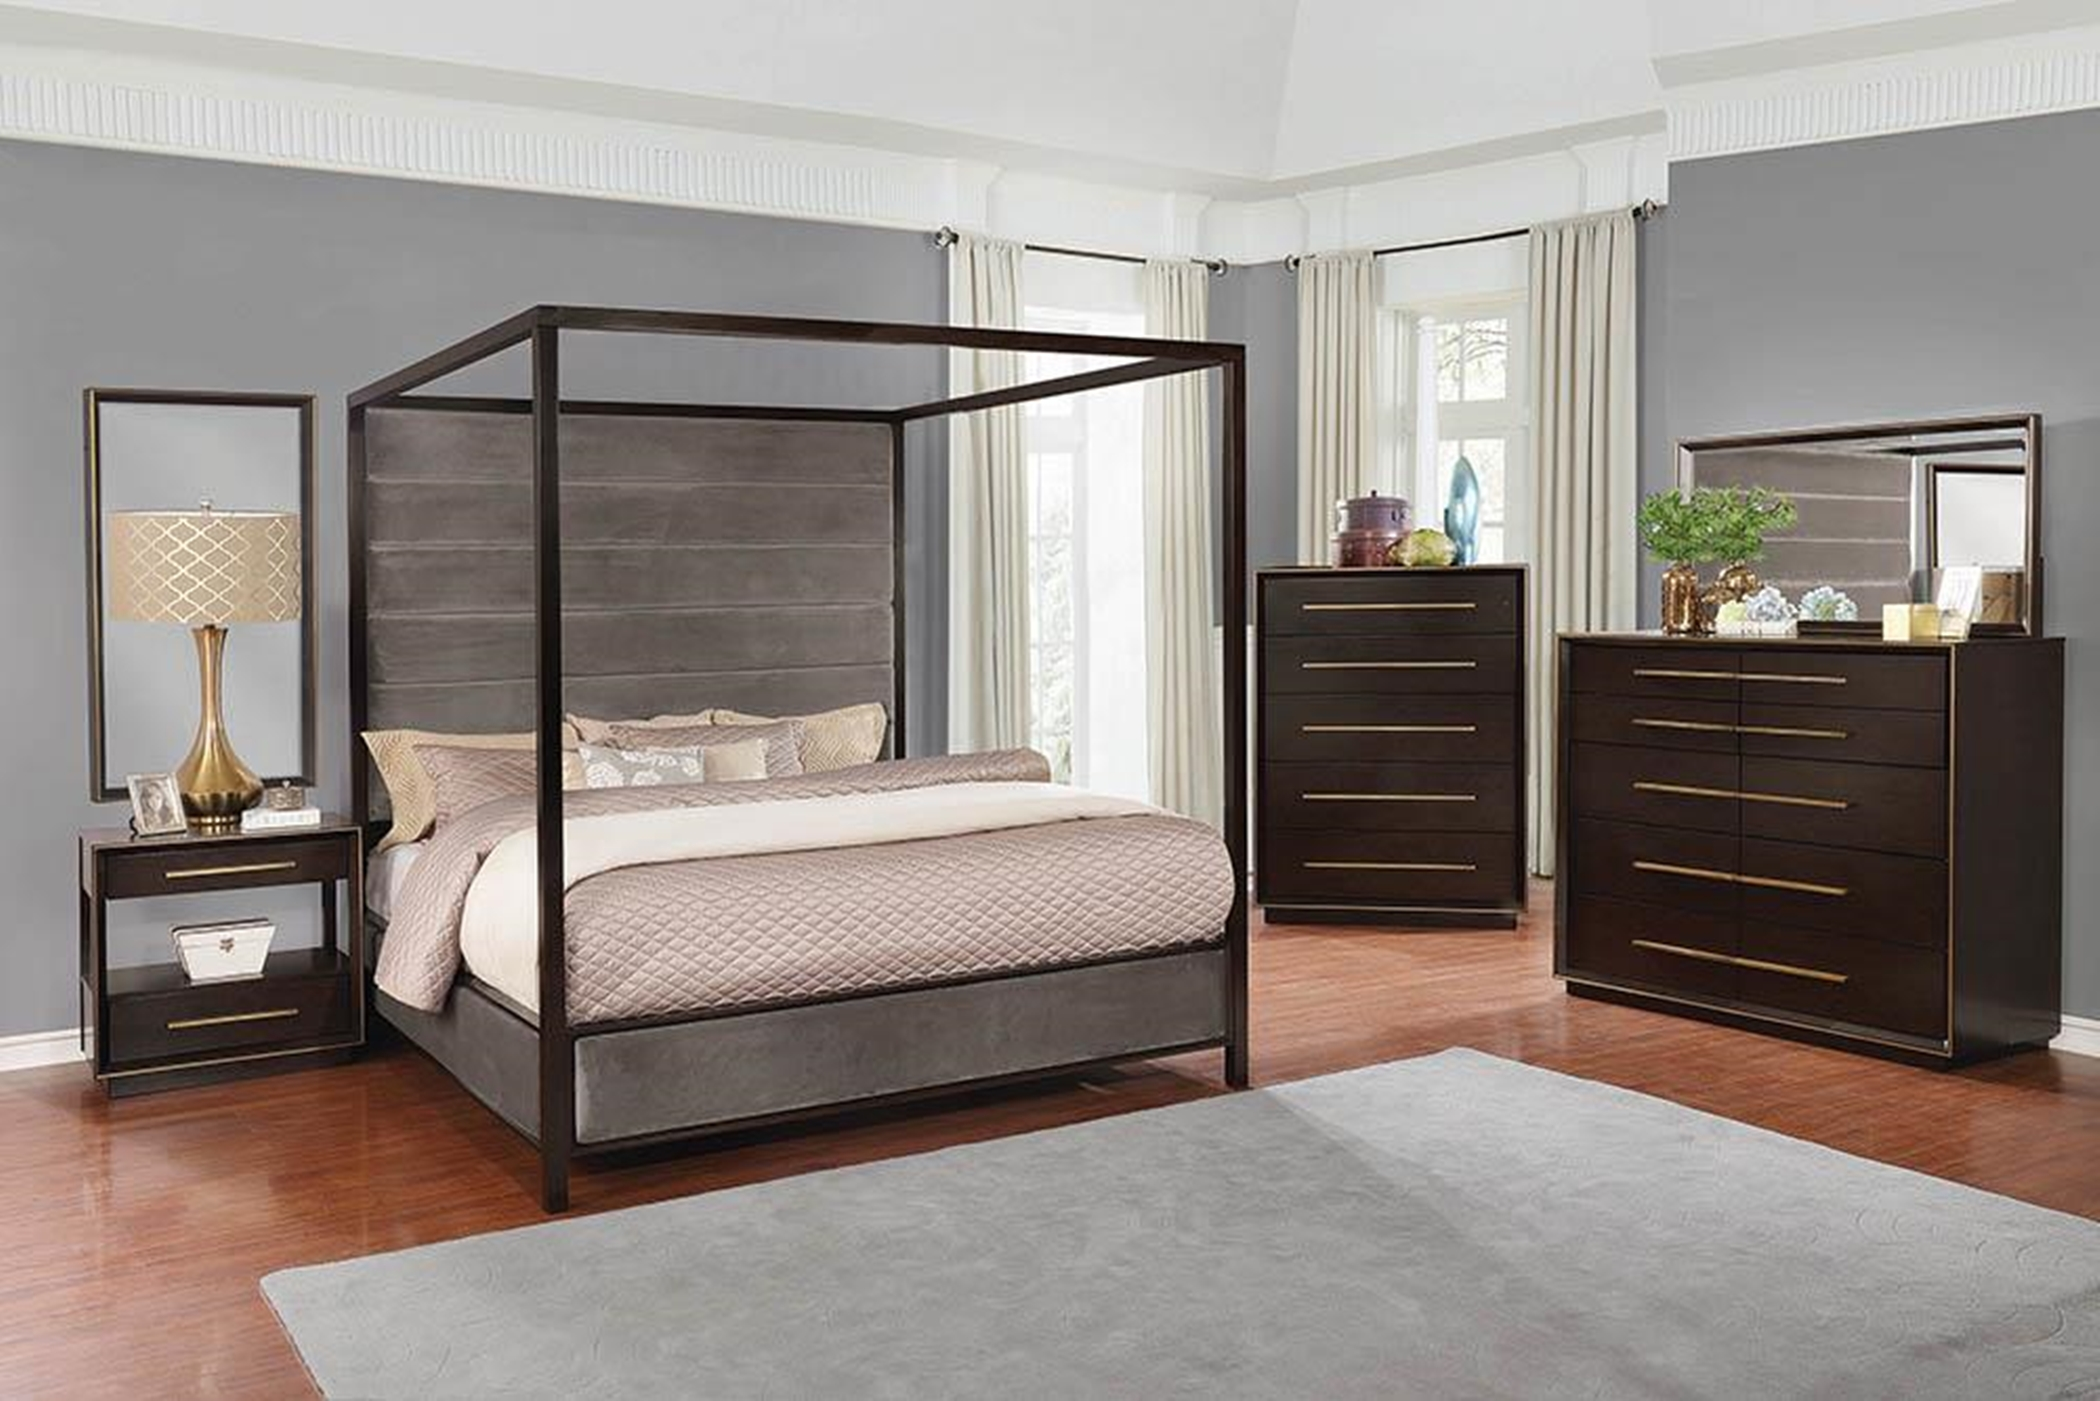 Smoked Peppercorn Queen Bed